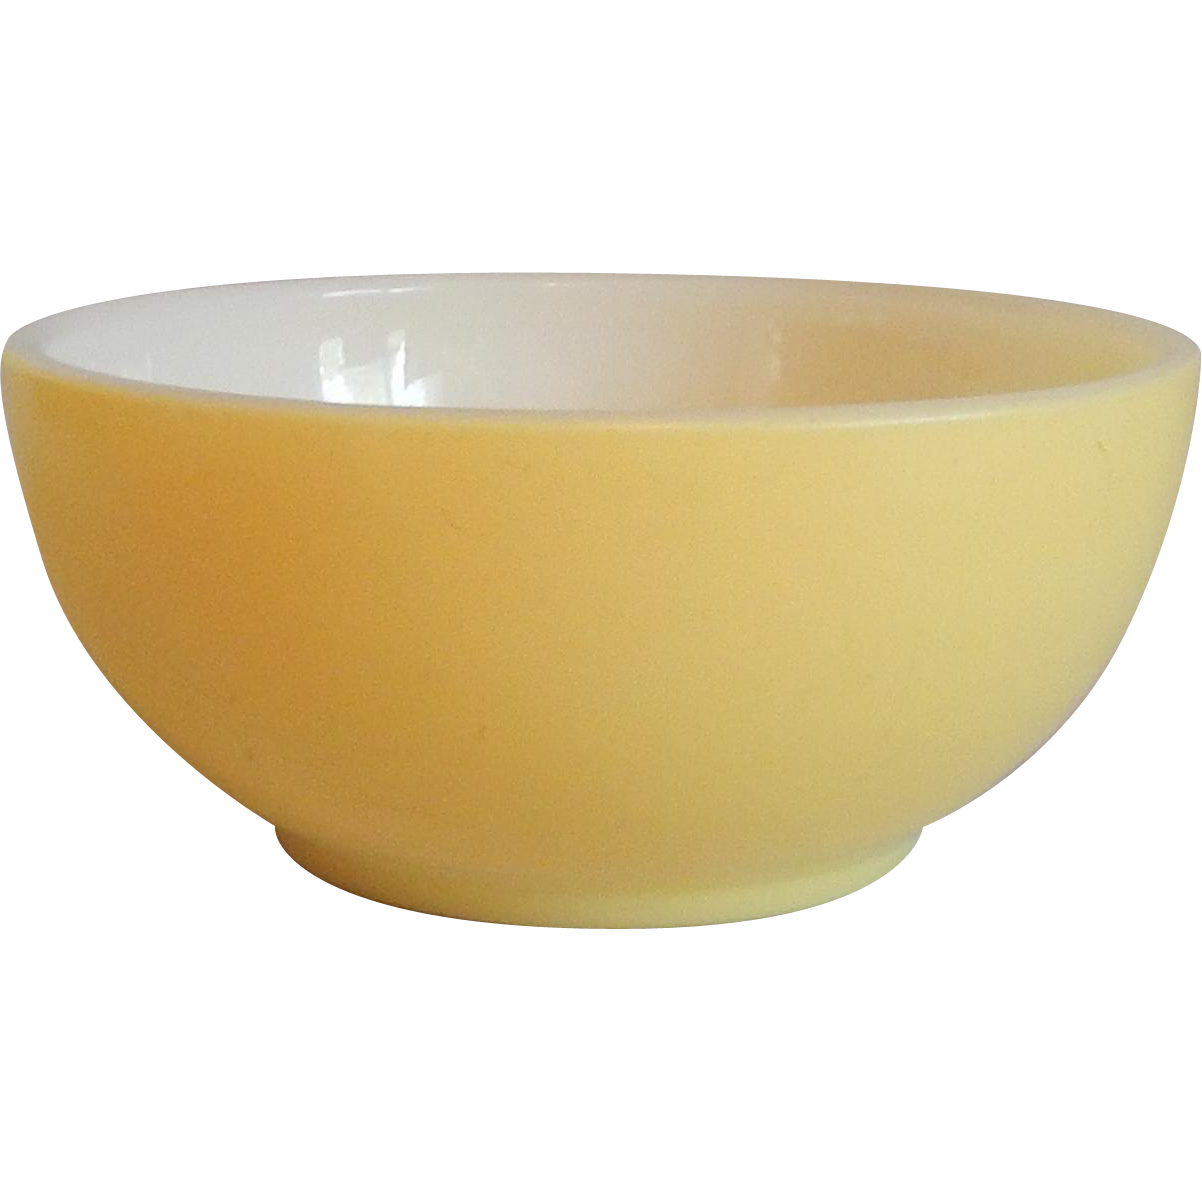 Bowl transparent background. Fire king yellow cereal